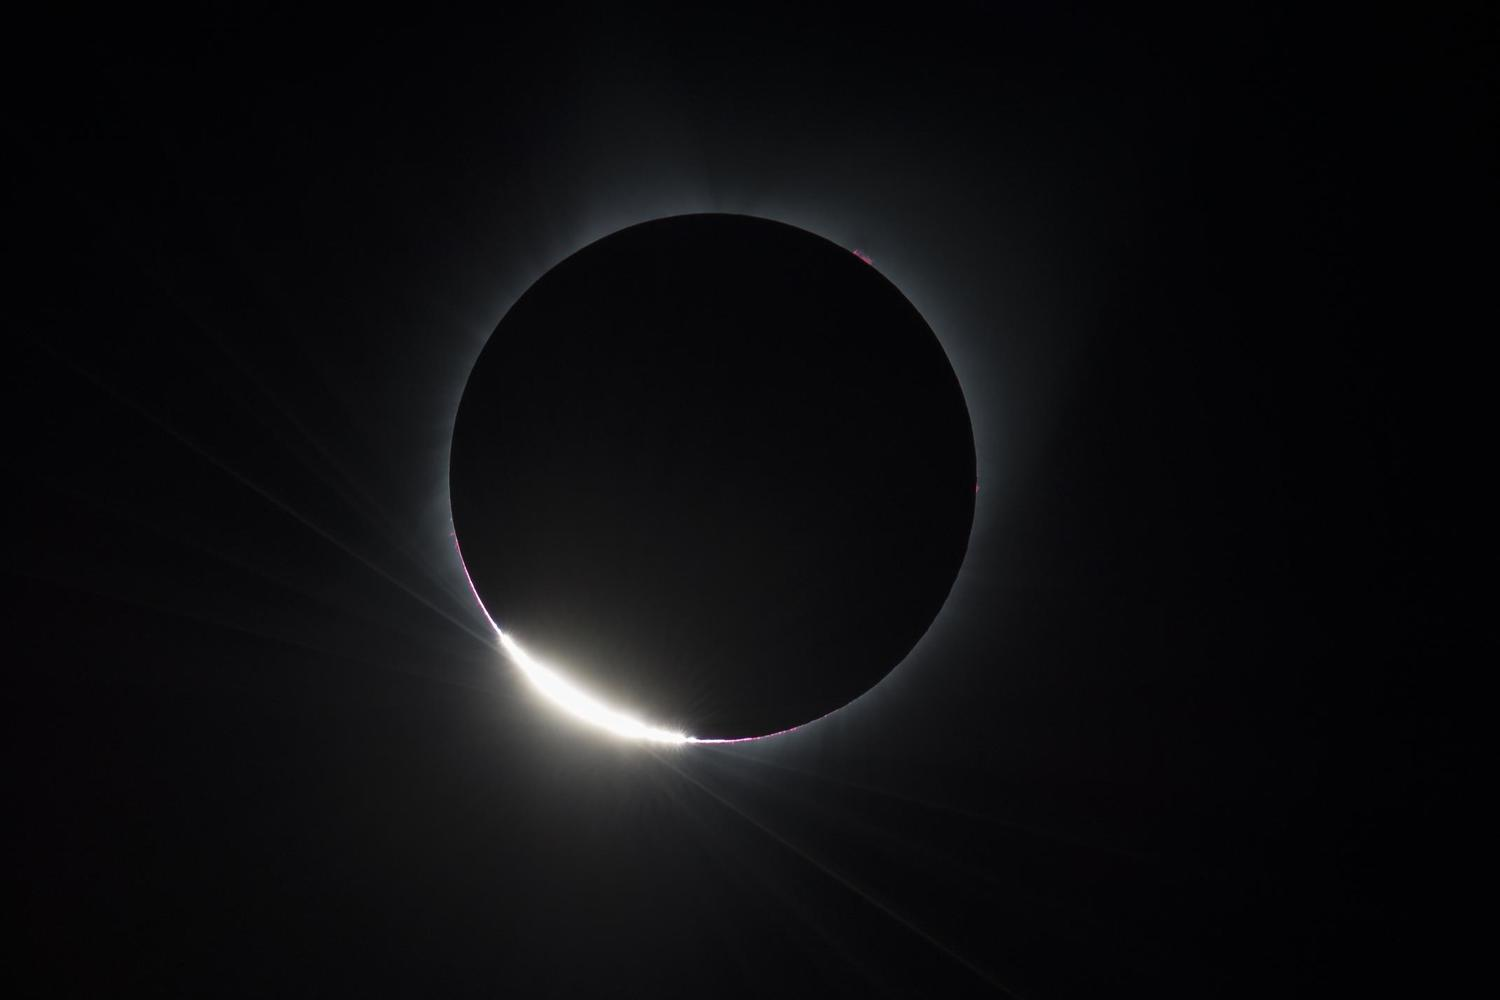 The 'diamond ring' effect in the solar eclipse